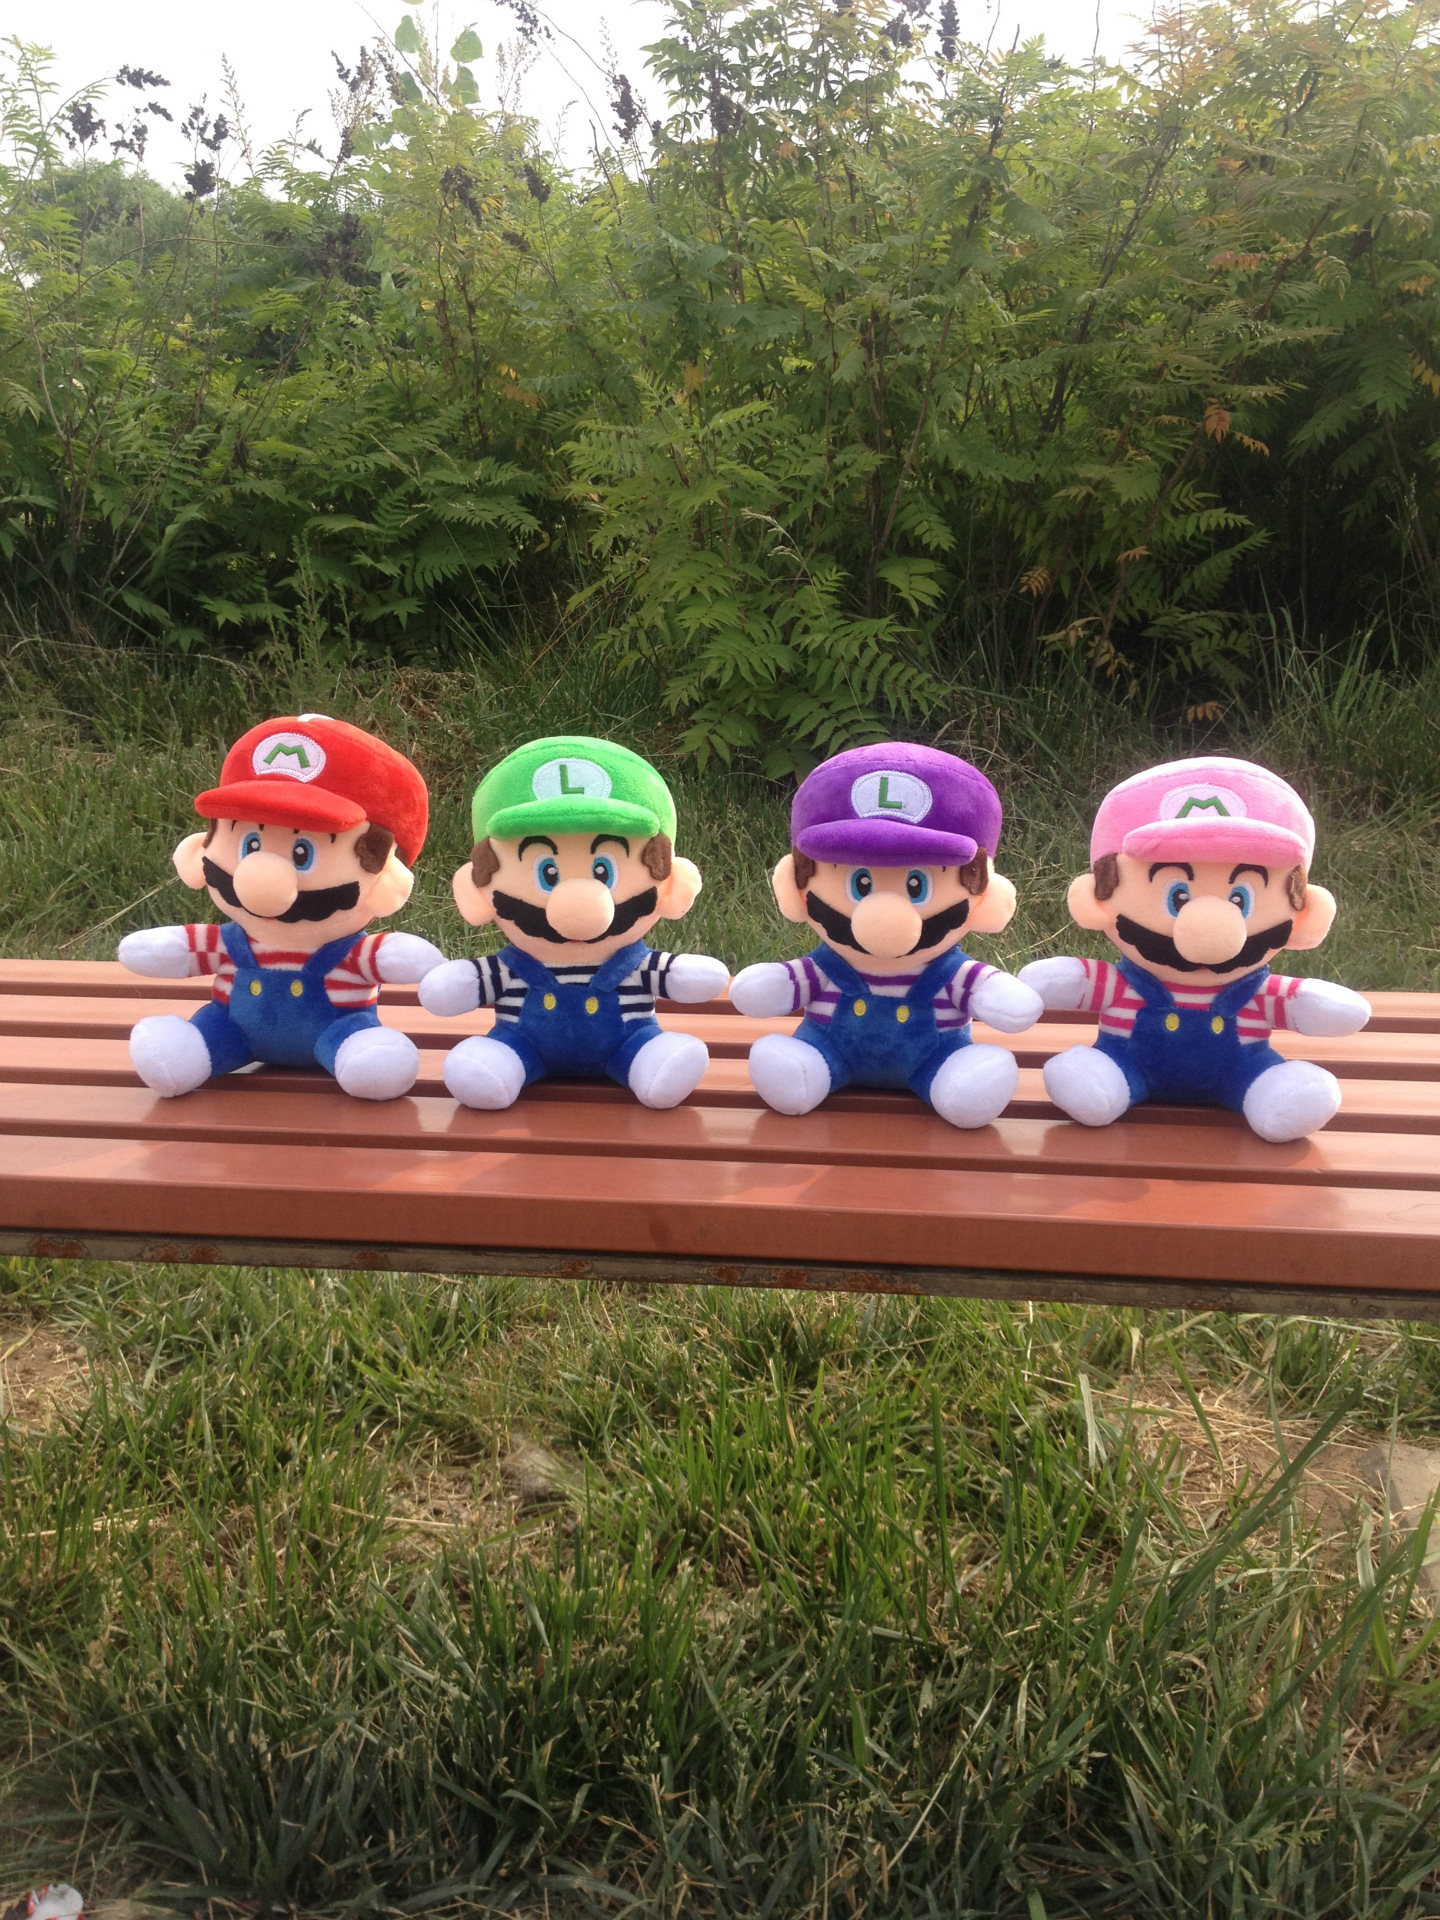 Super Mario Bros Plush Toys Cute Game Anime Supermario 20cm MARIO Cartoon Soft Stuffed Dolls for Kids Gift 20cm super mario bros monkey donkey kong soft stuffed plush toys dolls kids gifts